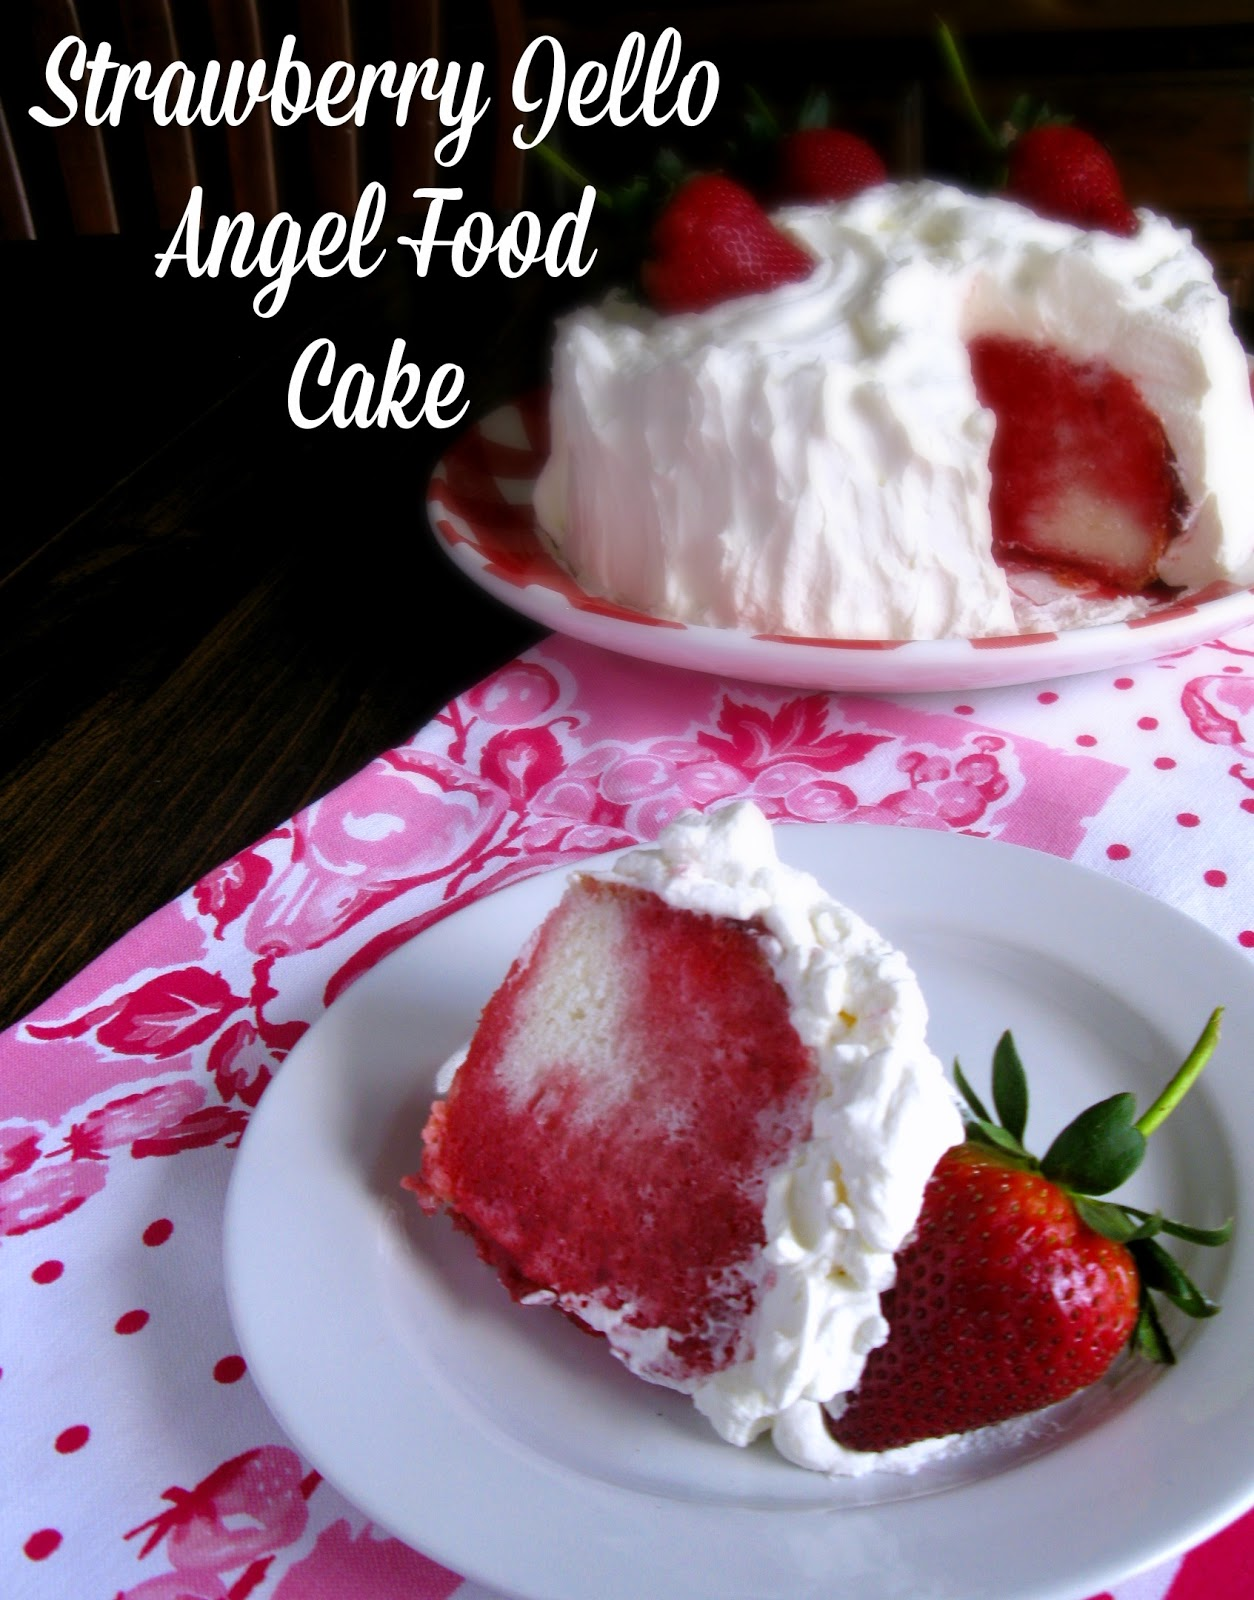 Angel Food Cake With Strawberries And Jello